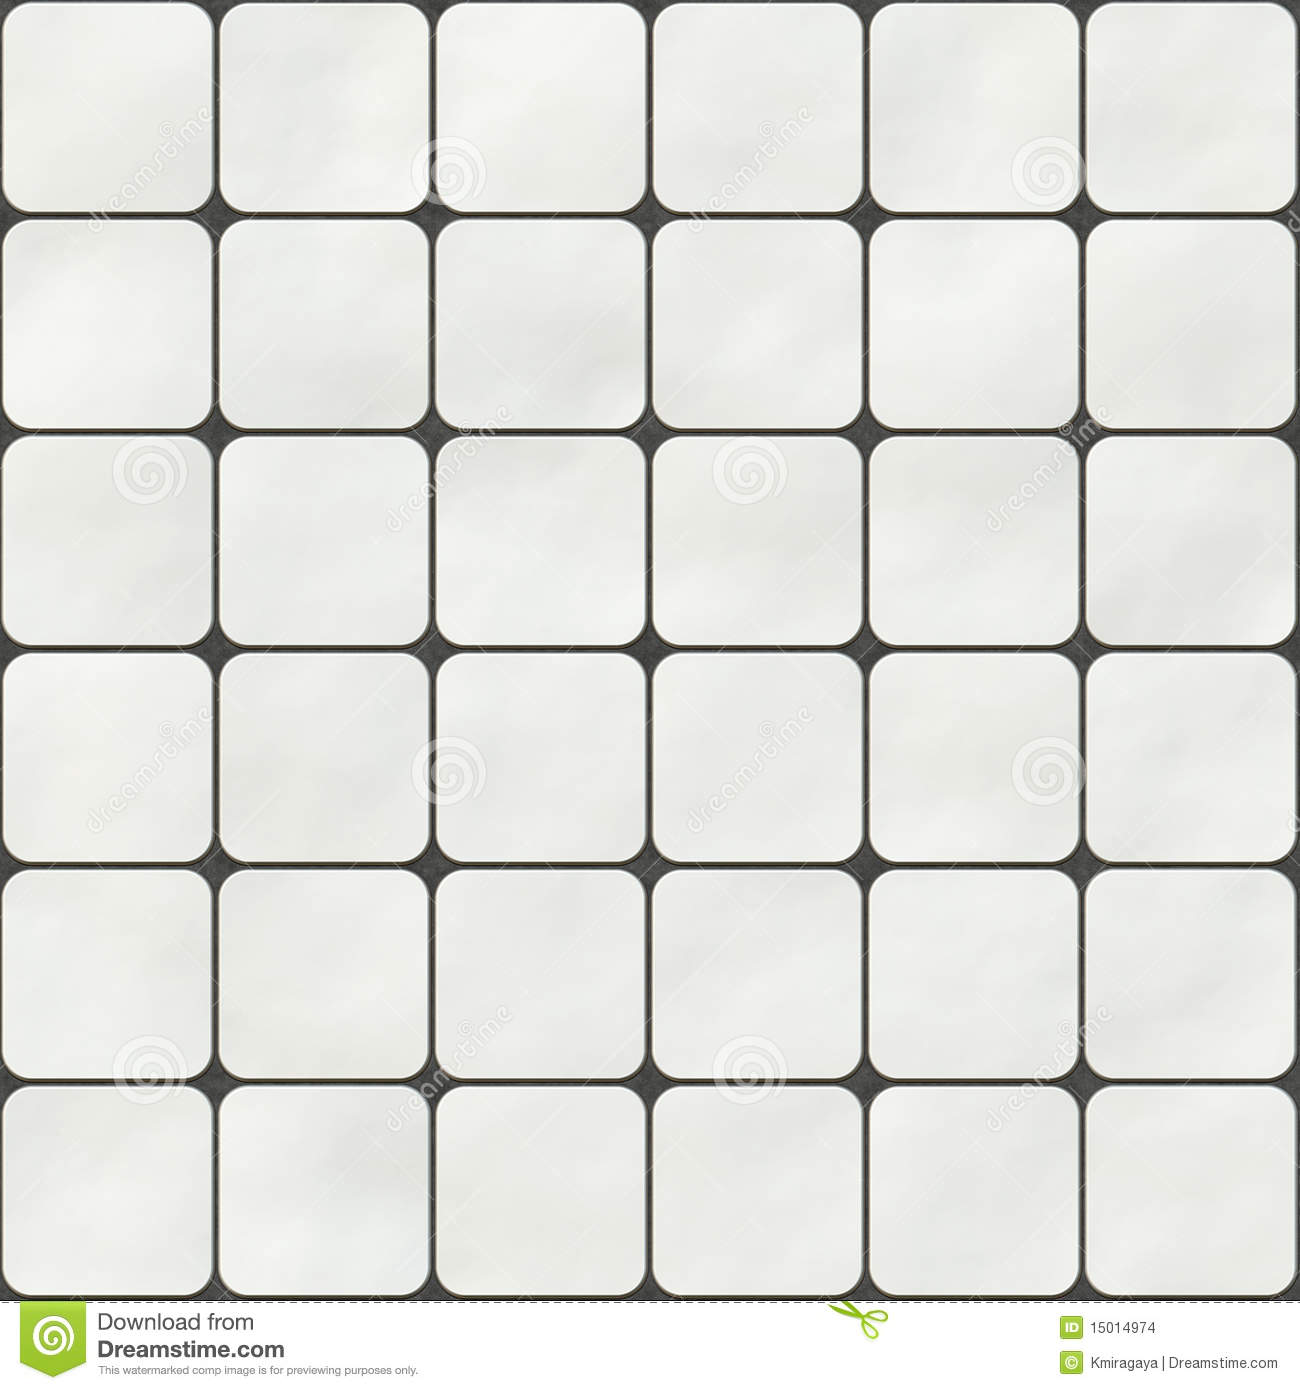 Seamless Texture Made Of White Square Tiles Stock Images   Image